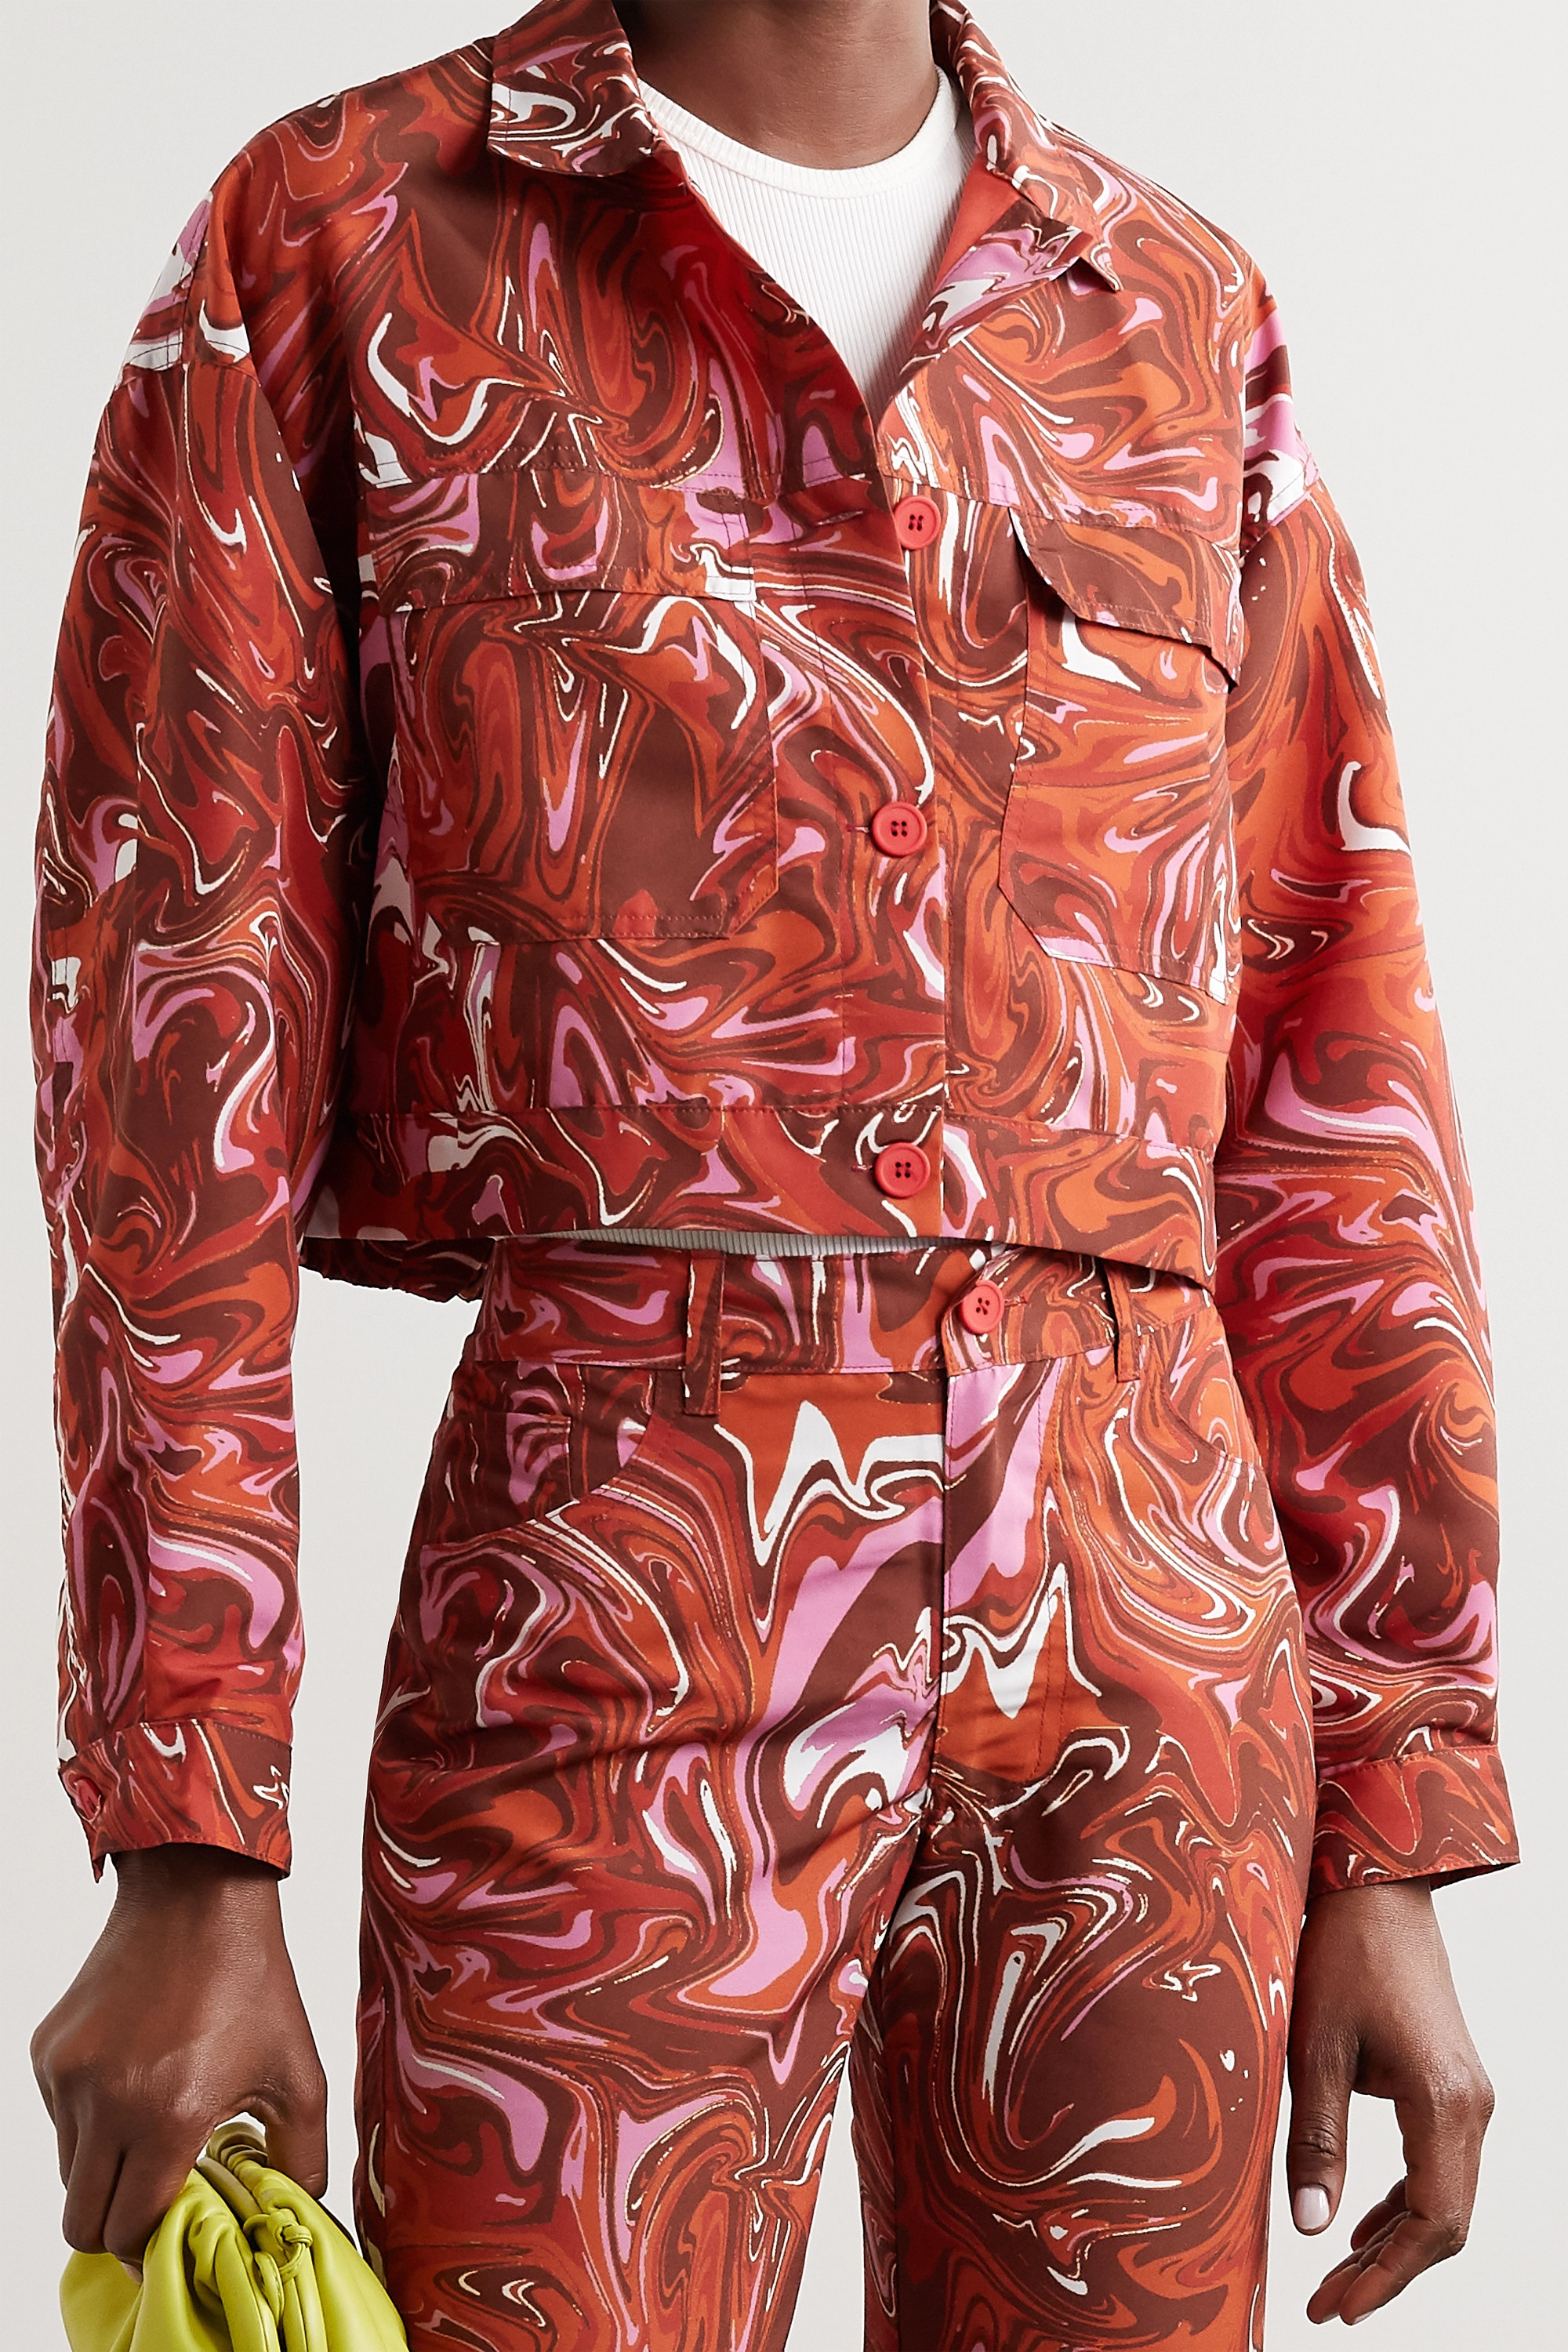 Maisie Wilen Club cropped printed shell jacket